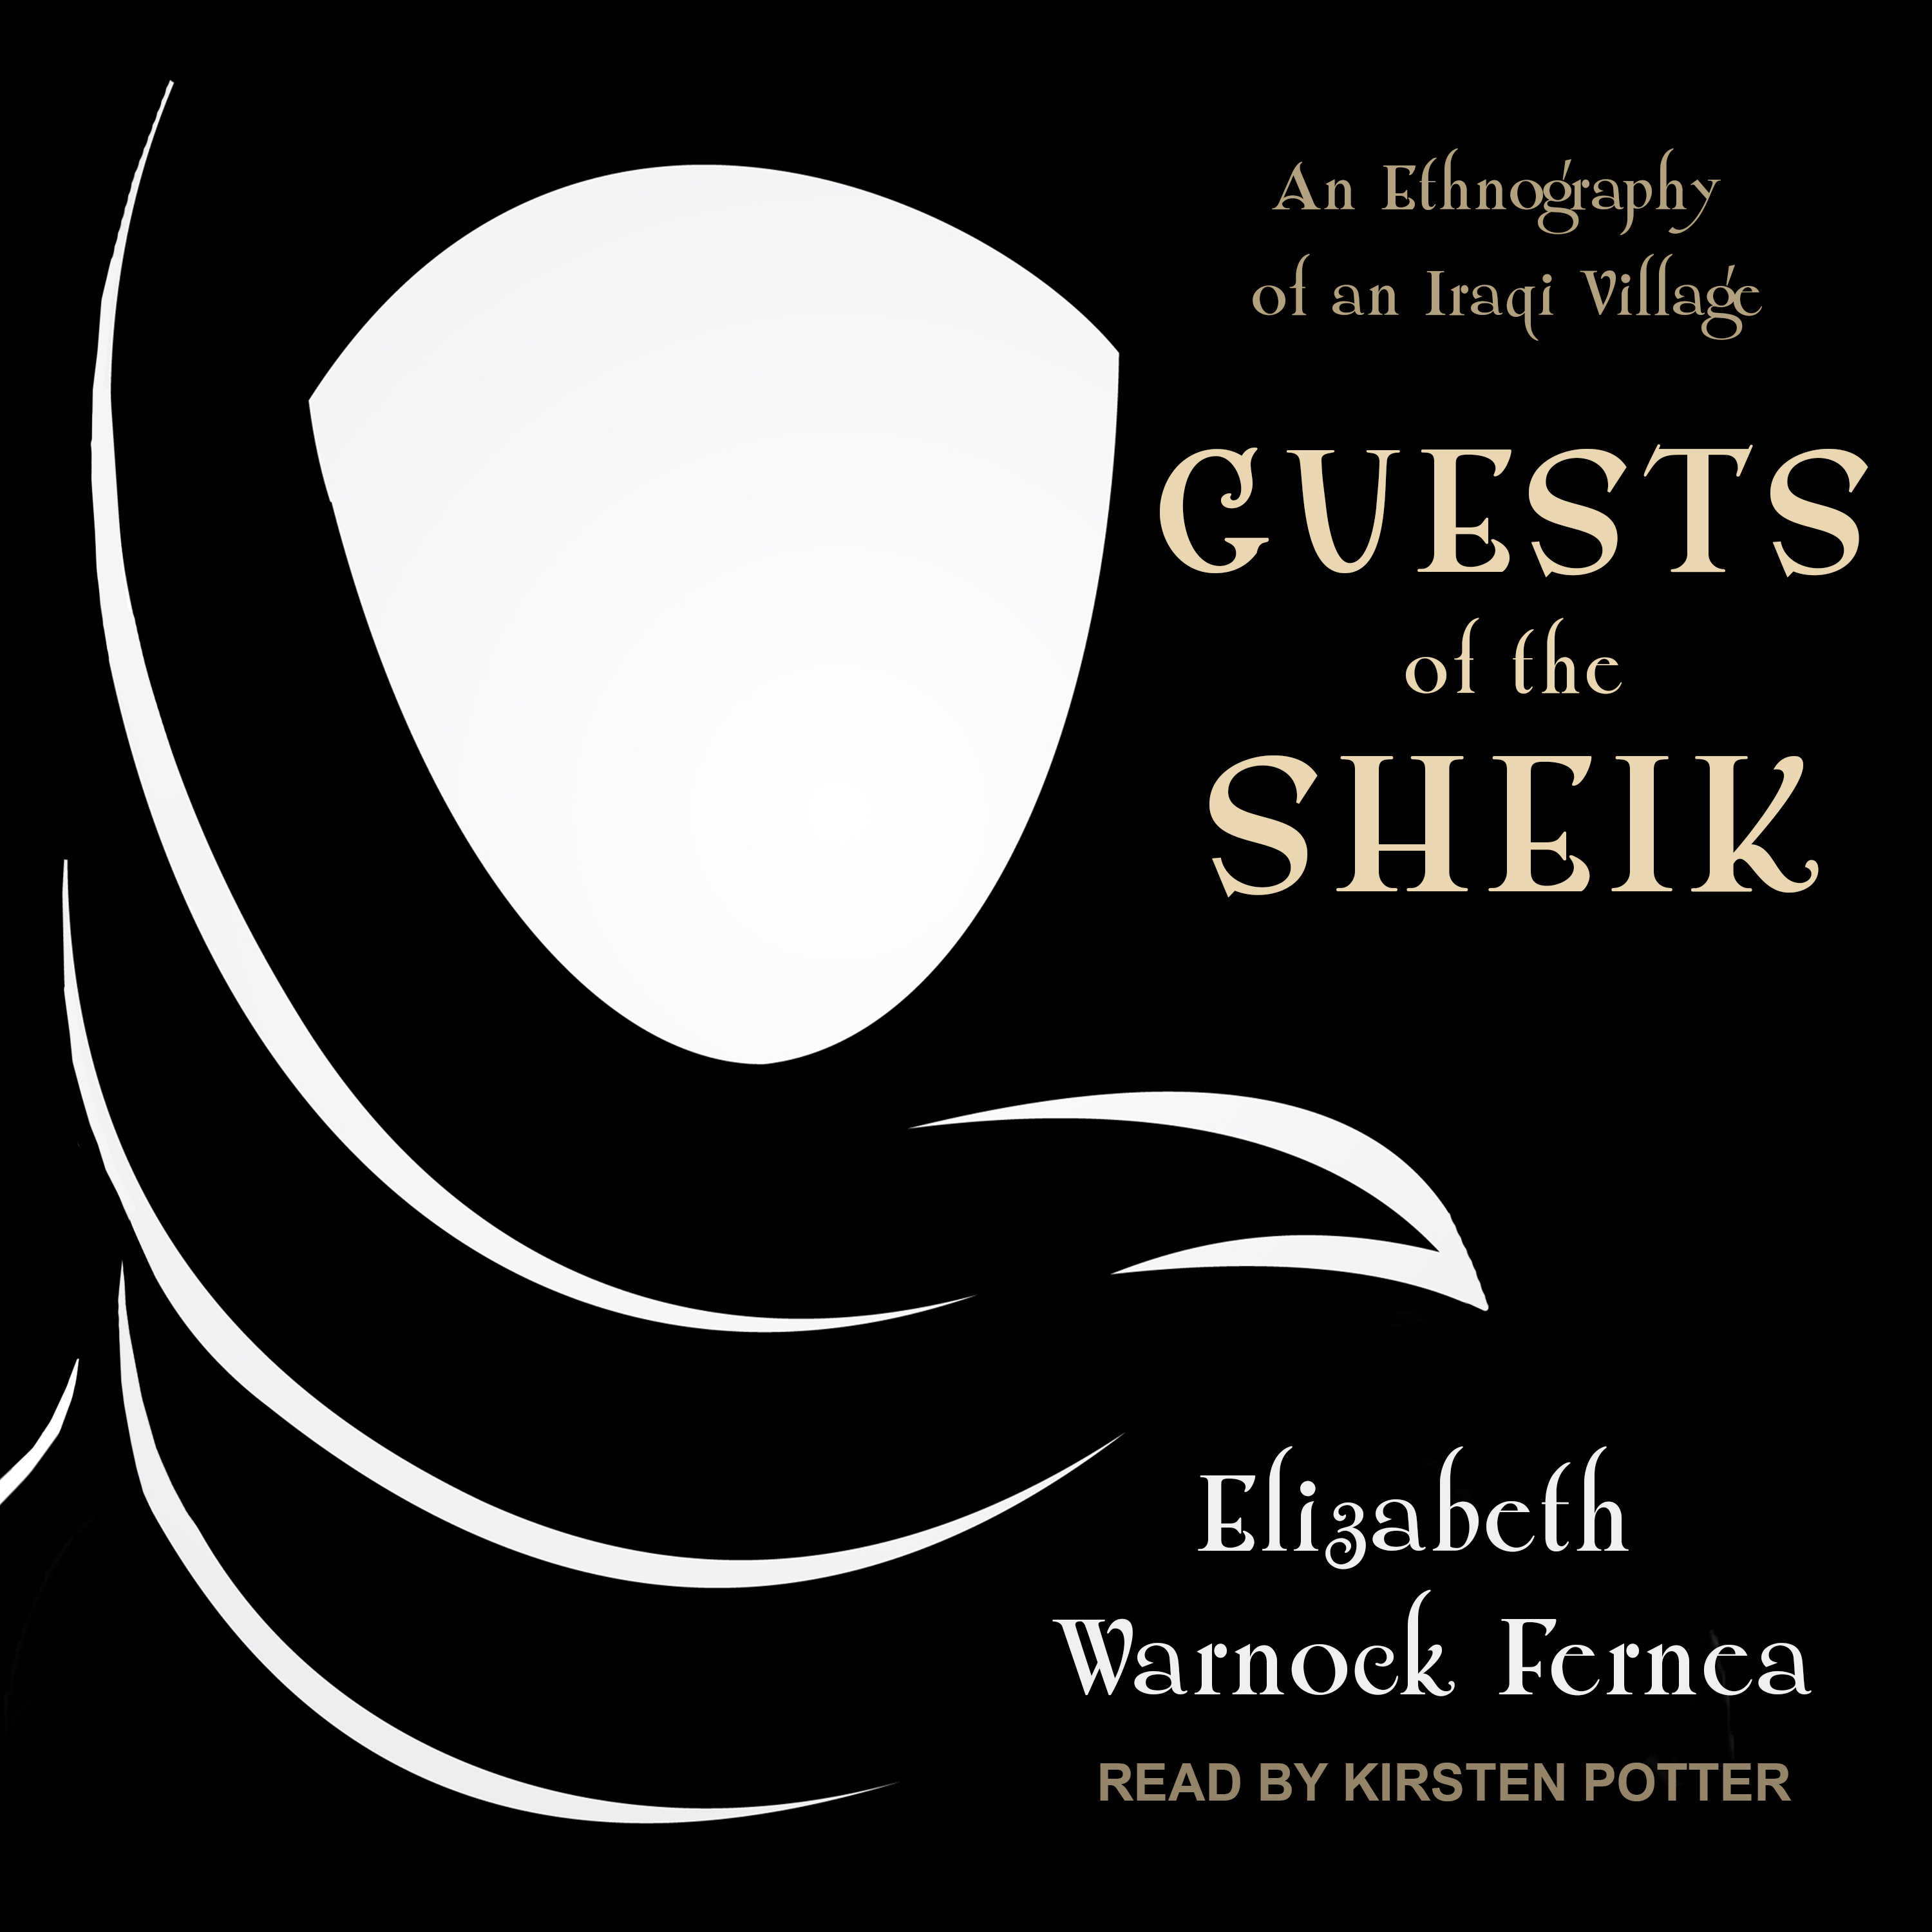 guests of the sheik essay Guests of the sheik 10/27/10 anthropology ciara schultz out of all the many countries in the world, each one is unique and individualistic with many exclusive the book guests of the sheik is just that, but more an american woman, (elizabeth fernea) travels to a completely foreign land, not known at.